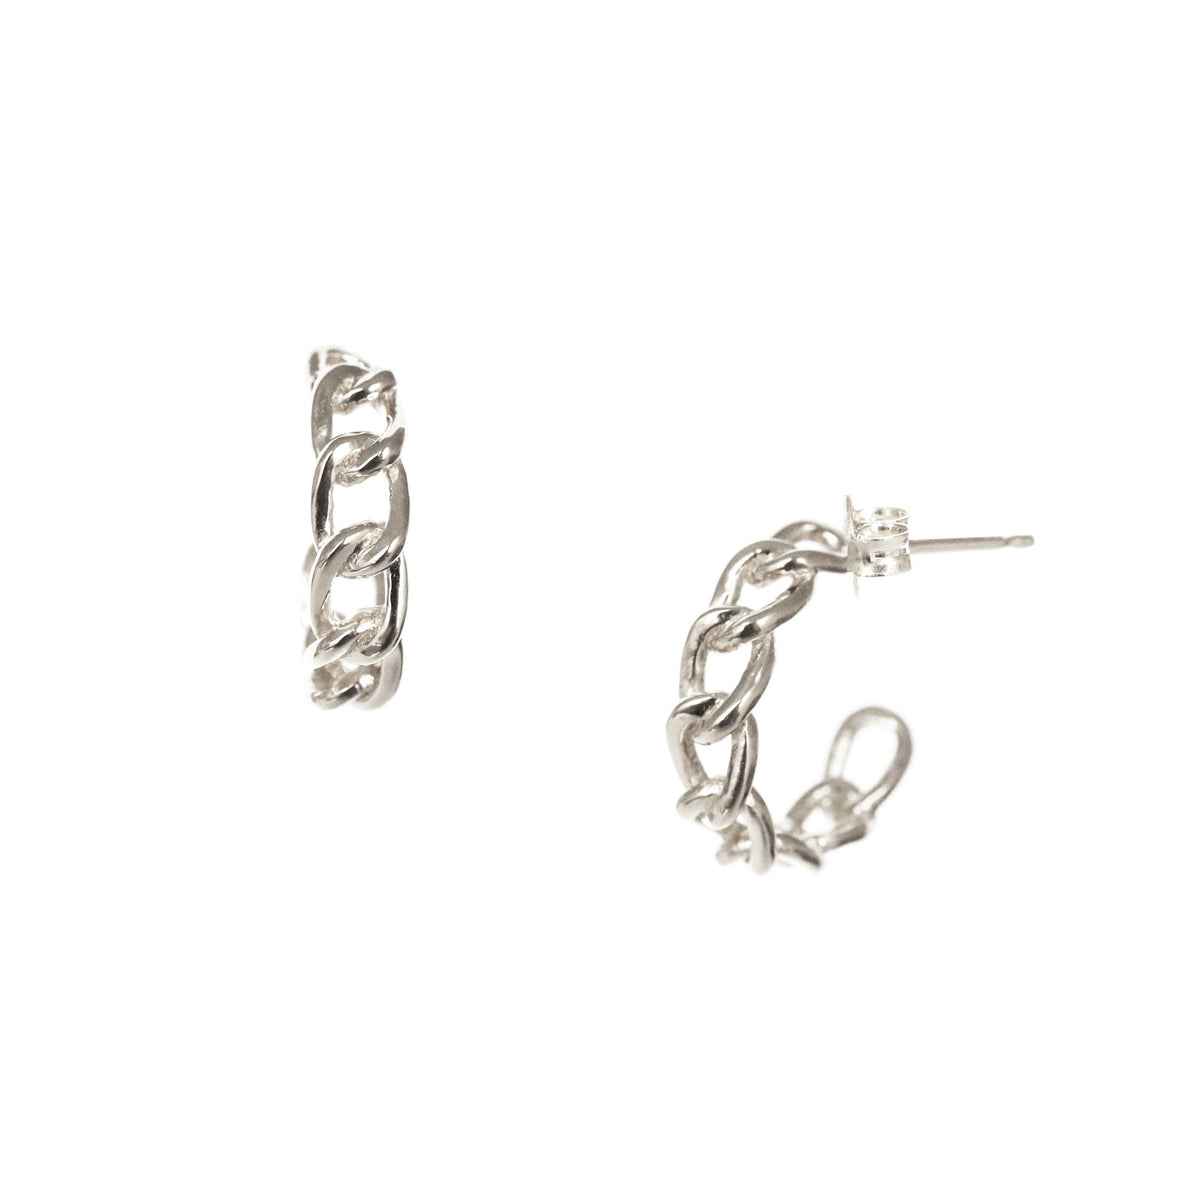 POISE CABLE LINK HUGGIE HOOPS - SILVER - SO PRETTY CARA COTTER